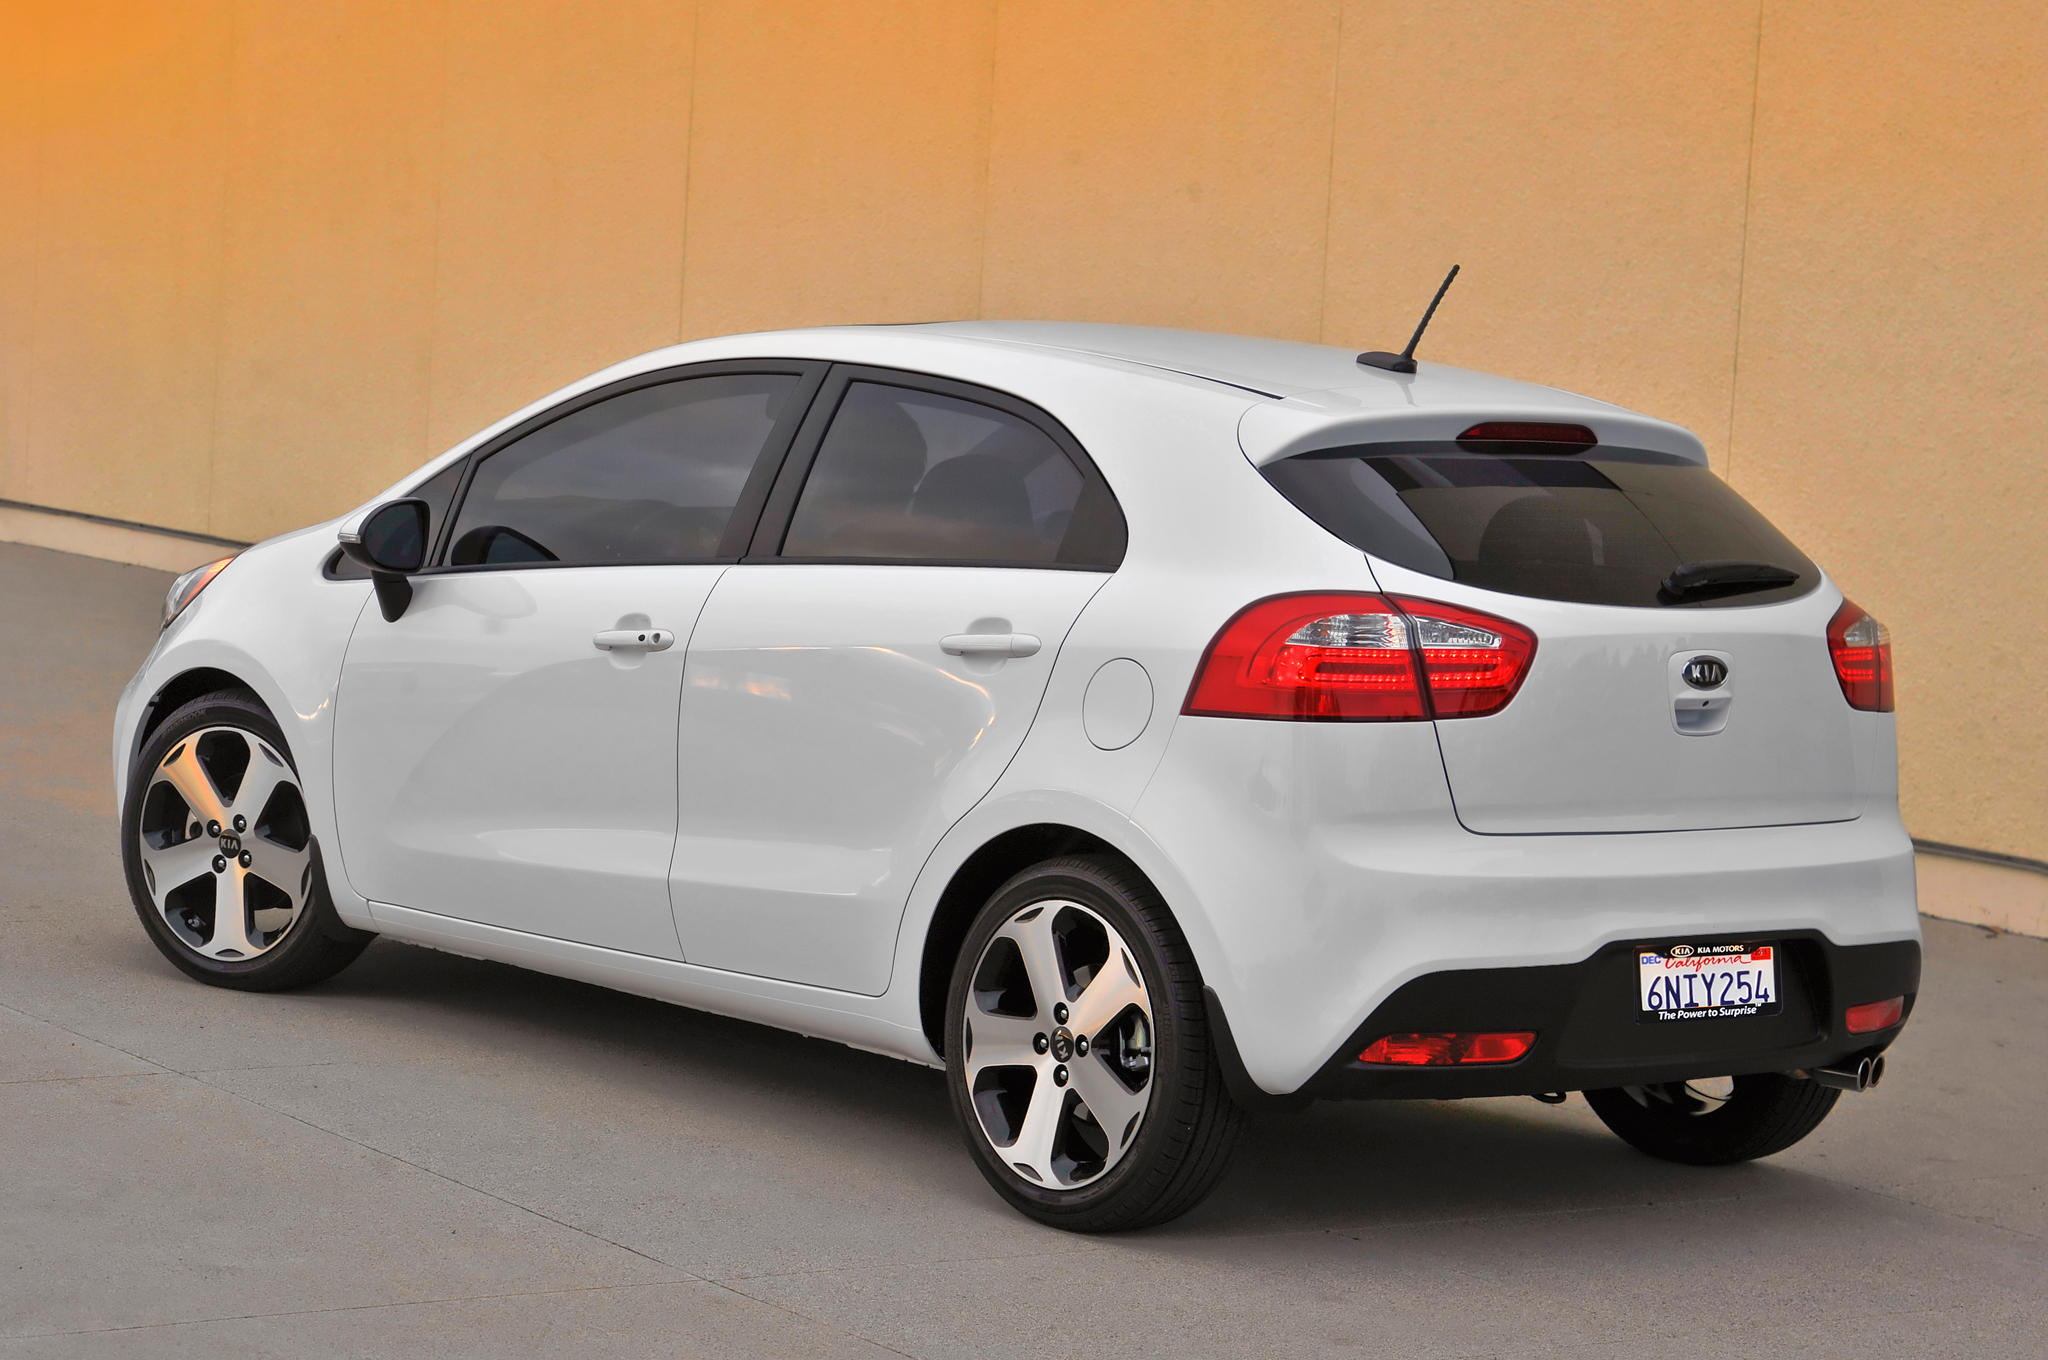 Kia Rio 5 Door Rear free download image Wallpaper